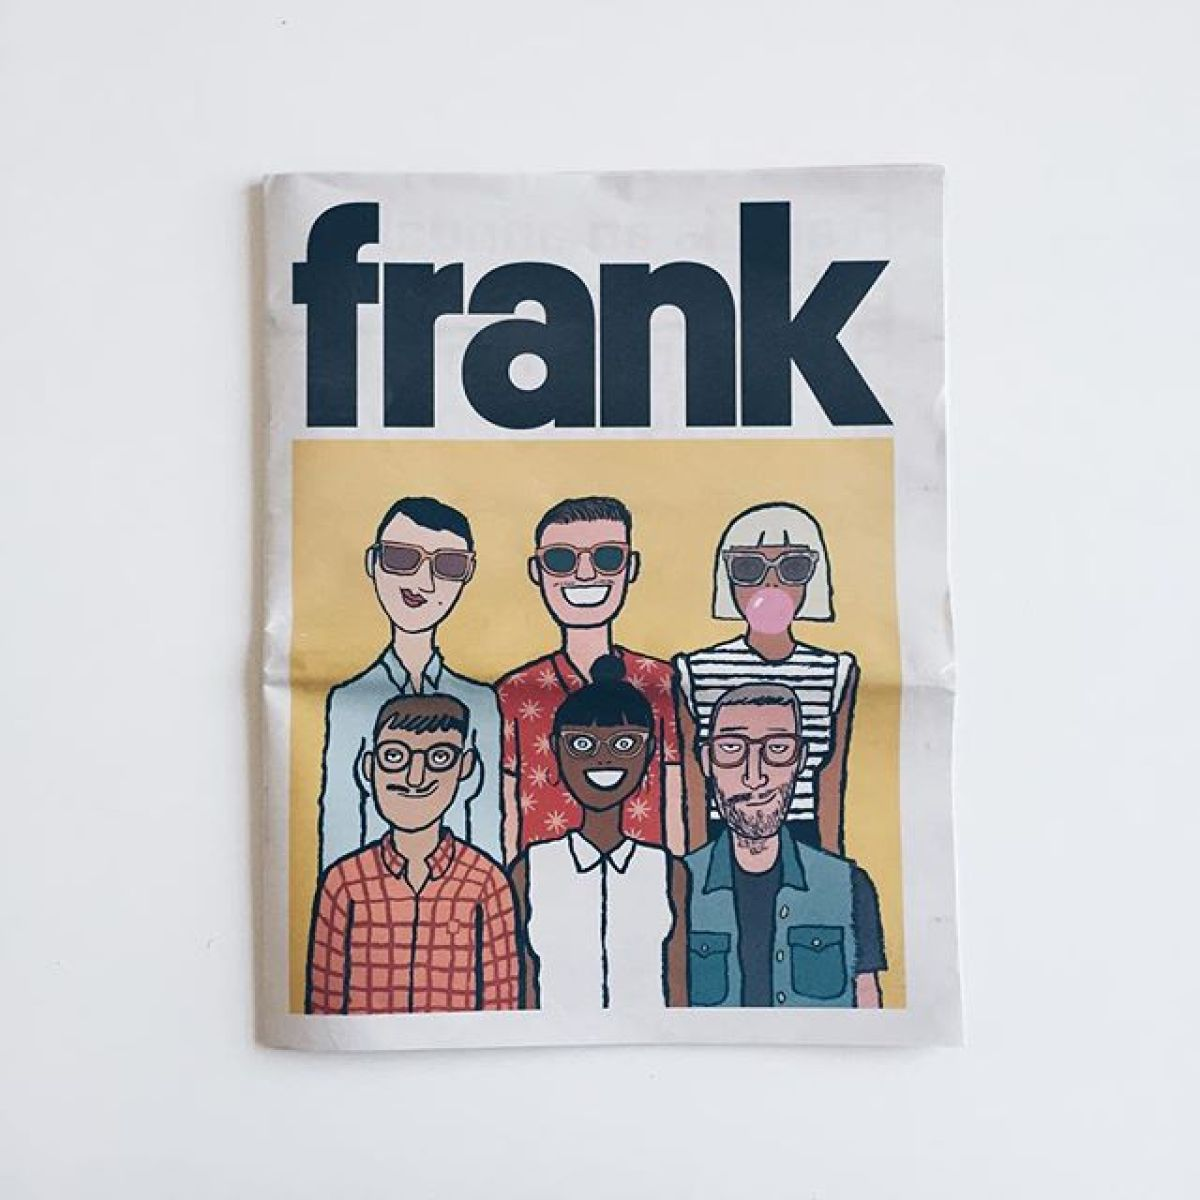 Frank @handsome_frank landed in the studio today — that's how you do it! #FrankPaper #print #design #graphicdesign